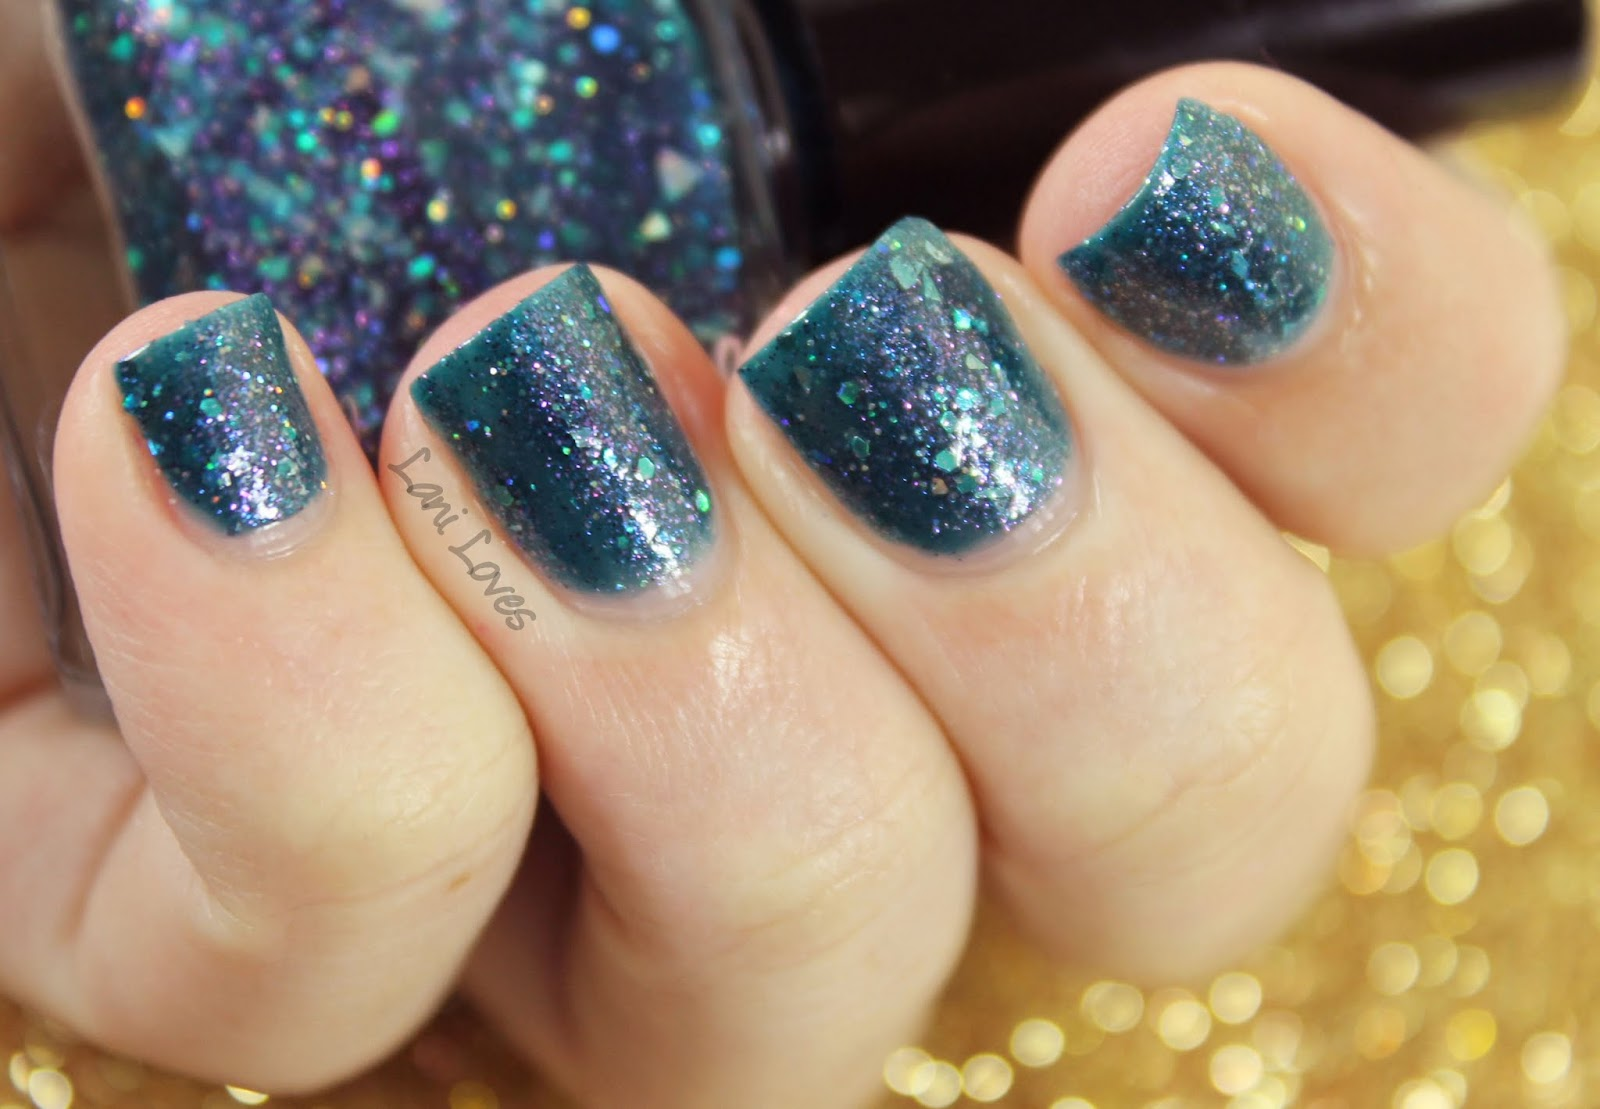 Femme Fatale Cosmetics All Sanity is Lost nail polish swatches & review